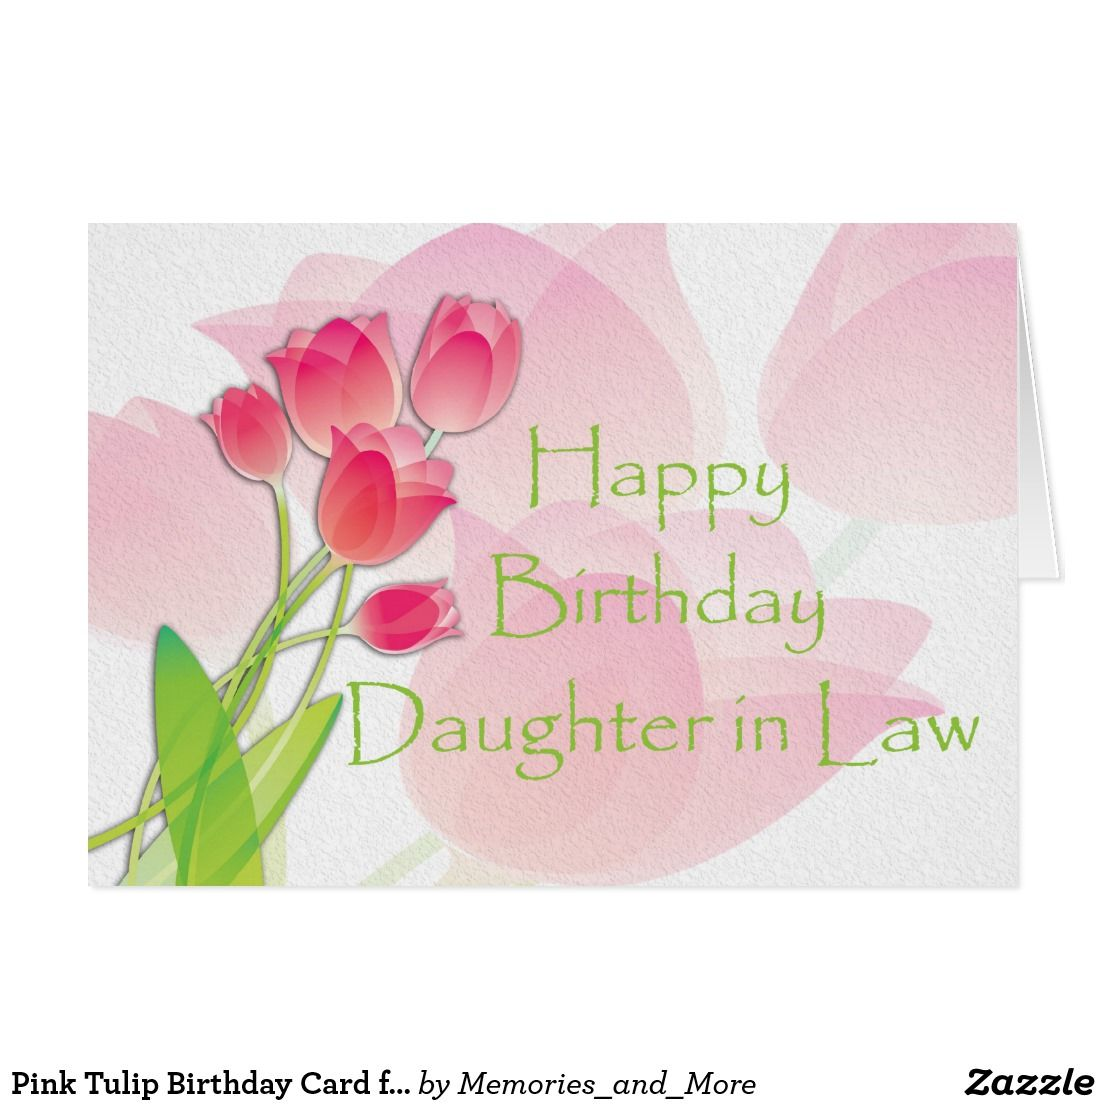 Pink Tulip Birthday Card for DaughterinLaw